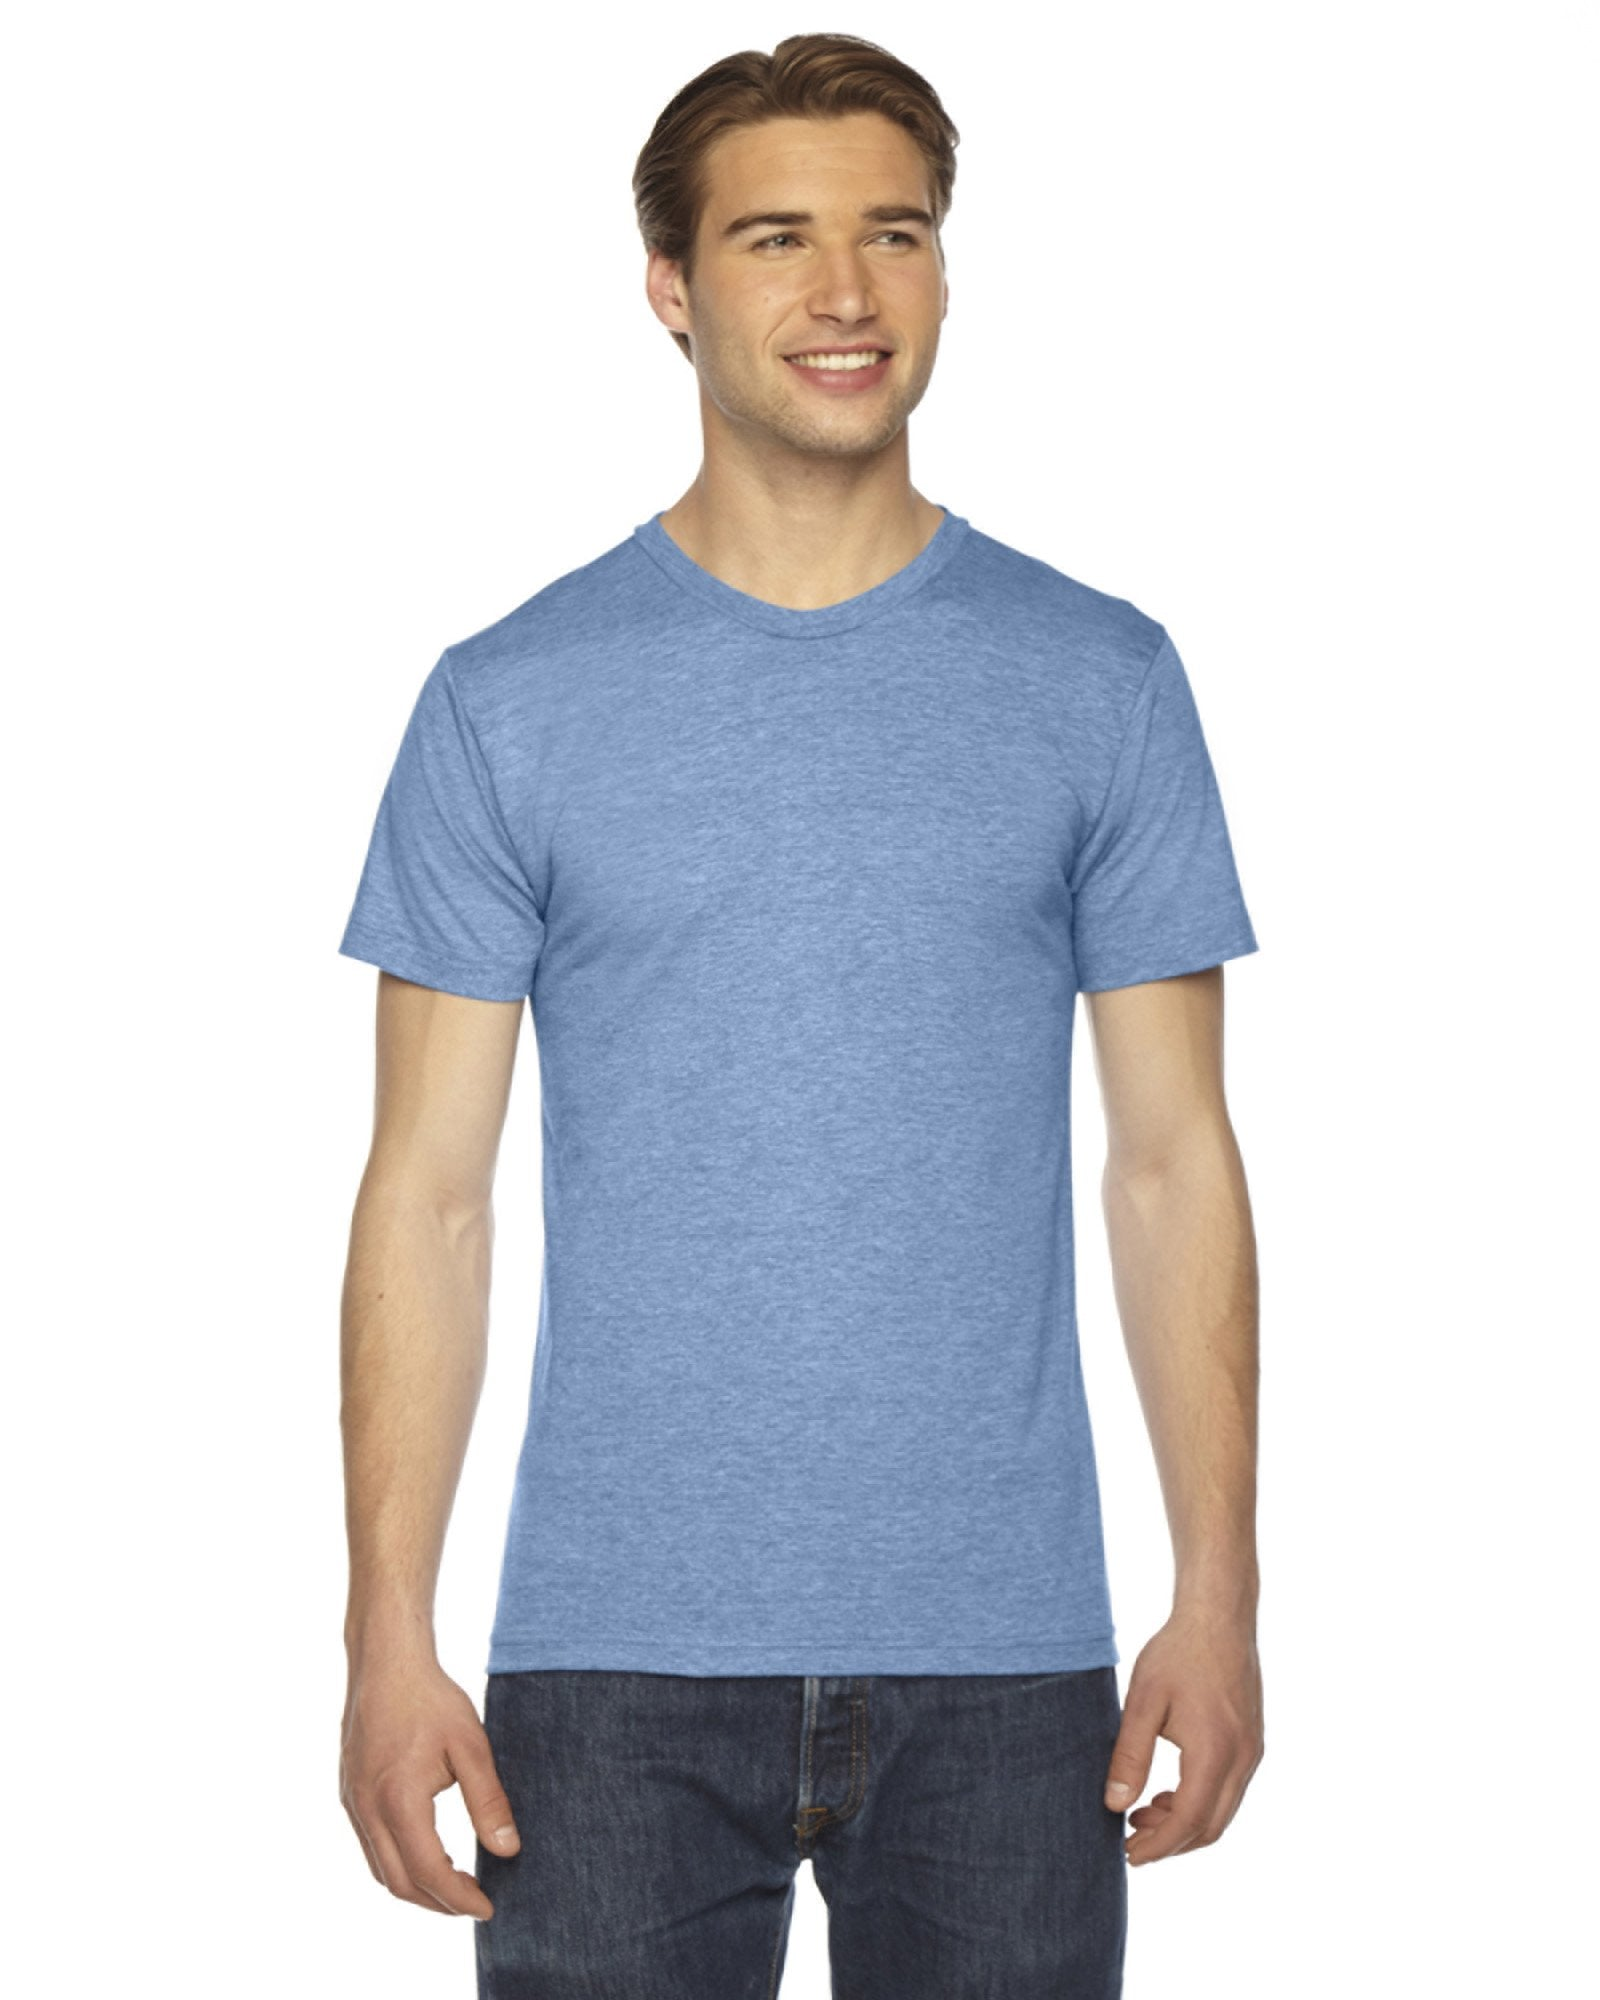 American Apparel - TR401 - Unisex Triblend Short-Sleeve Track T-Shirt